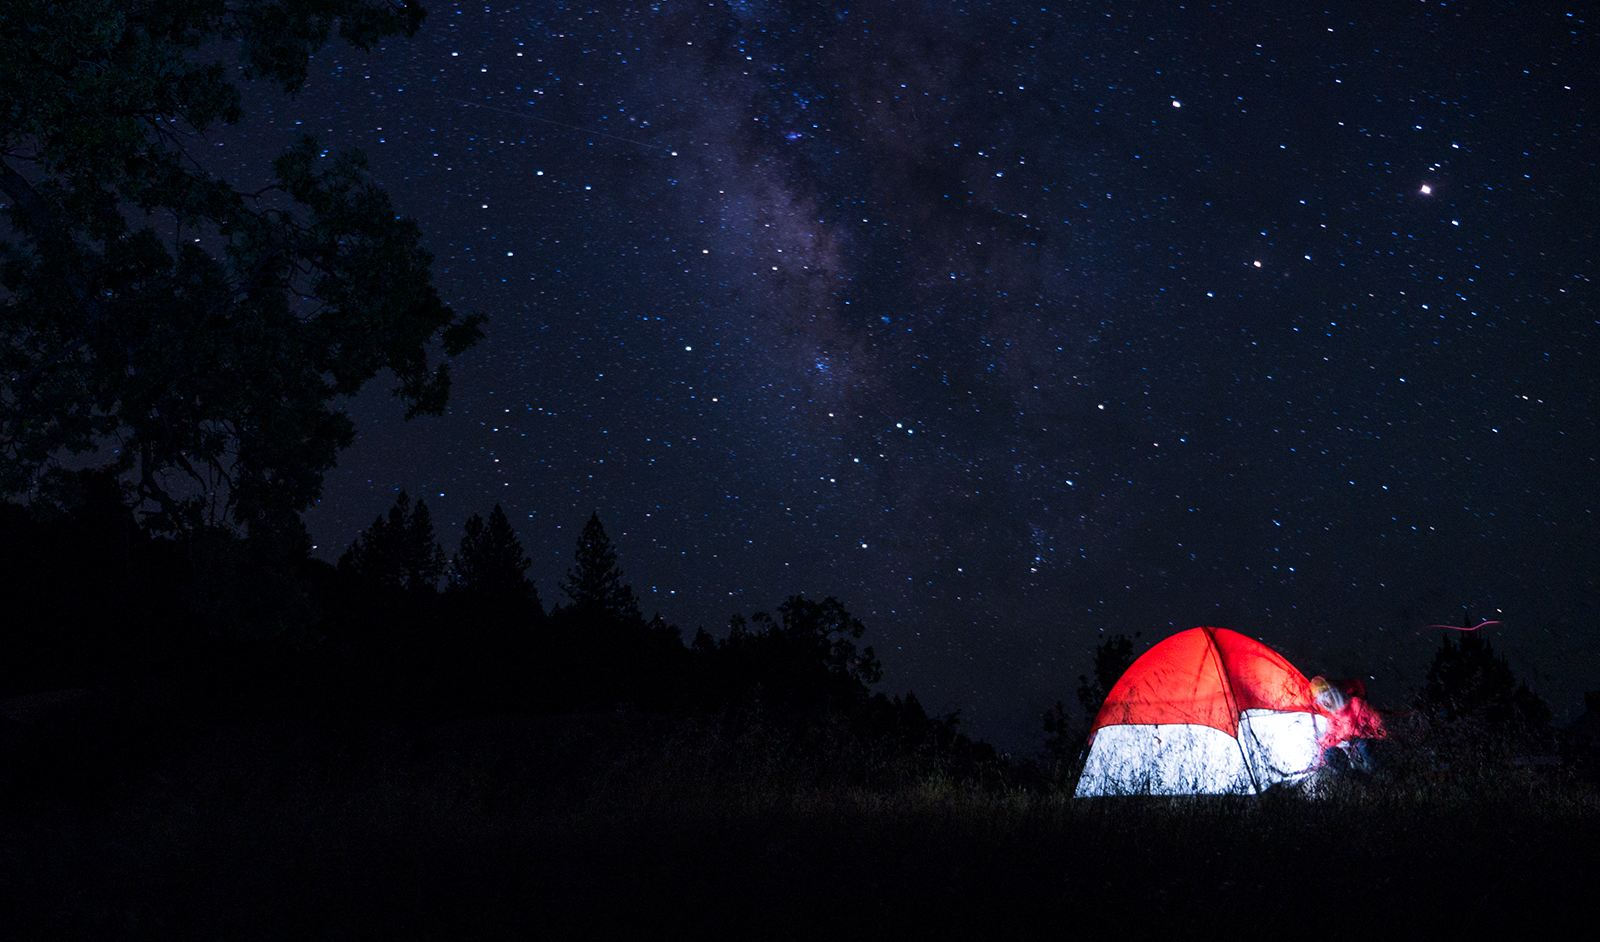 hobo life night astrophotography of red tent hoang m nguyen